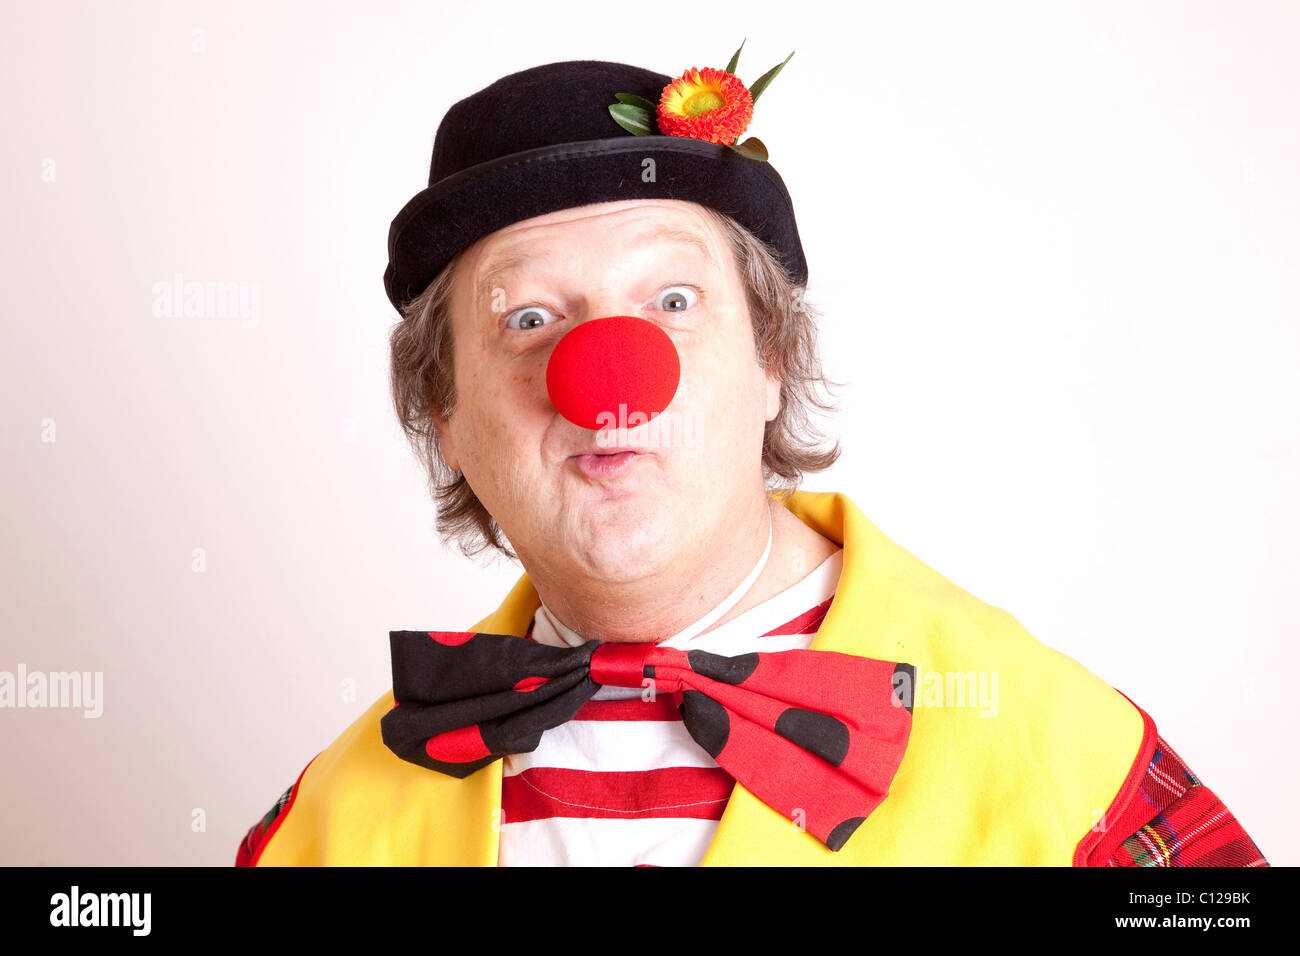 Clown - Stock Image